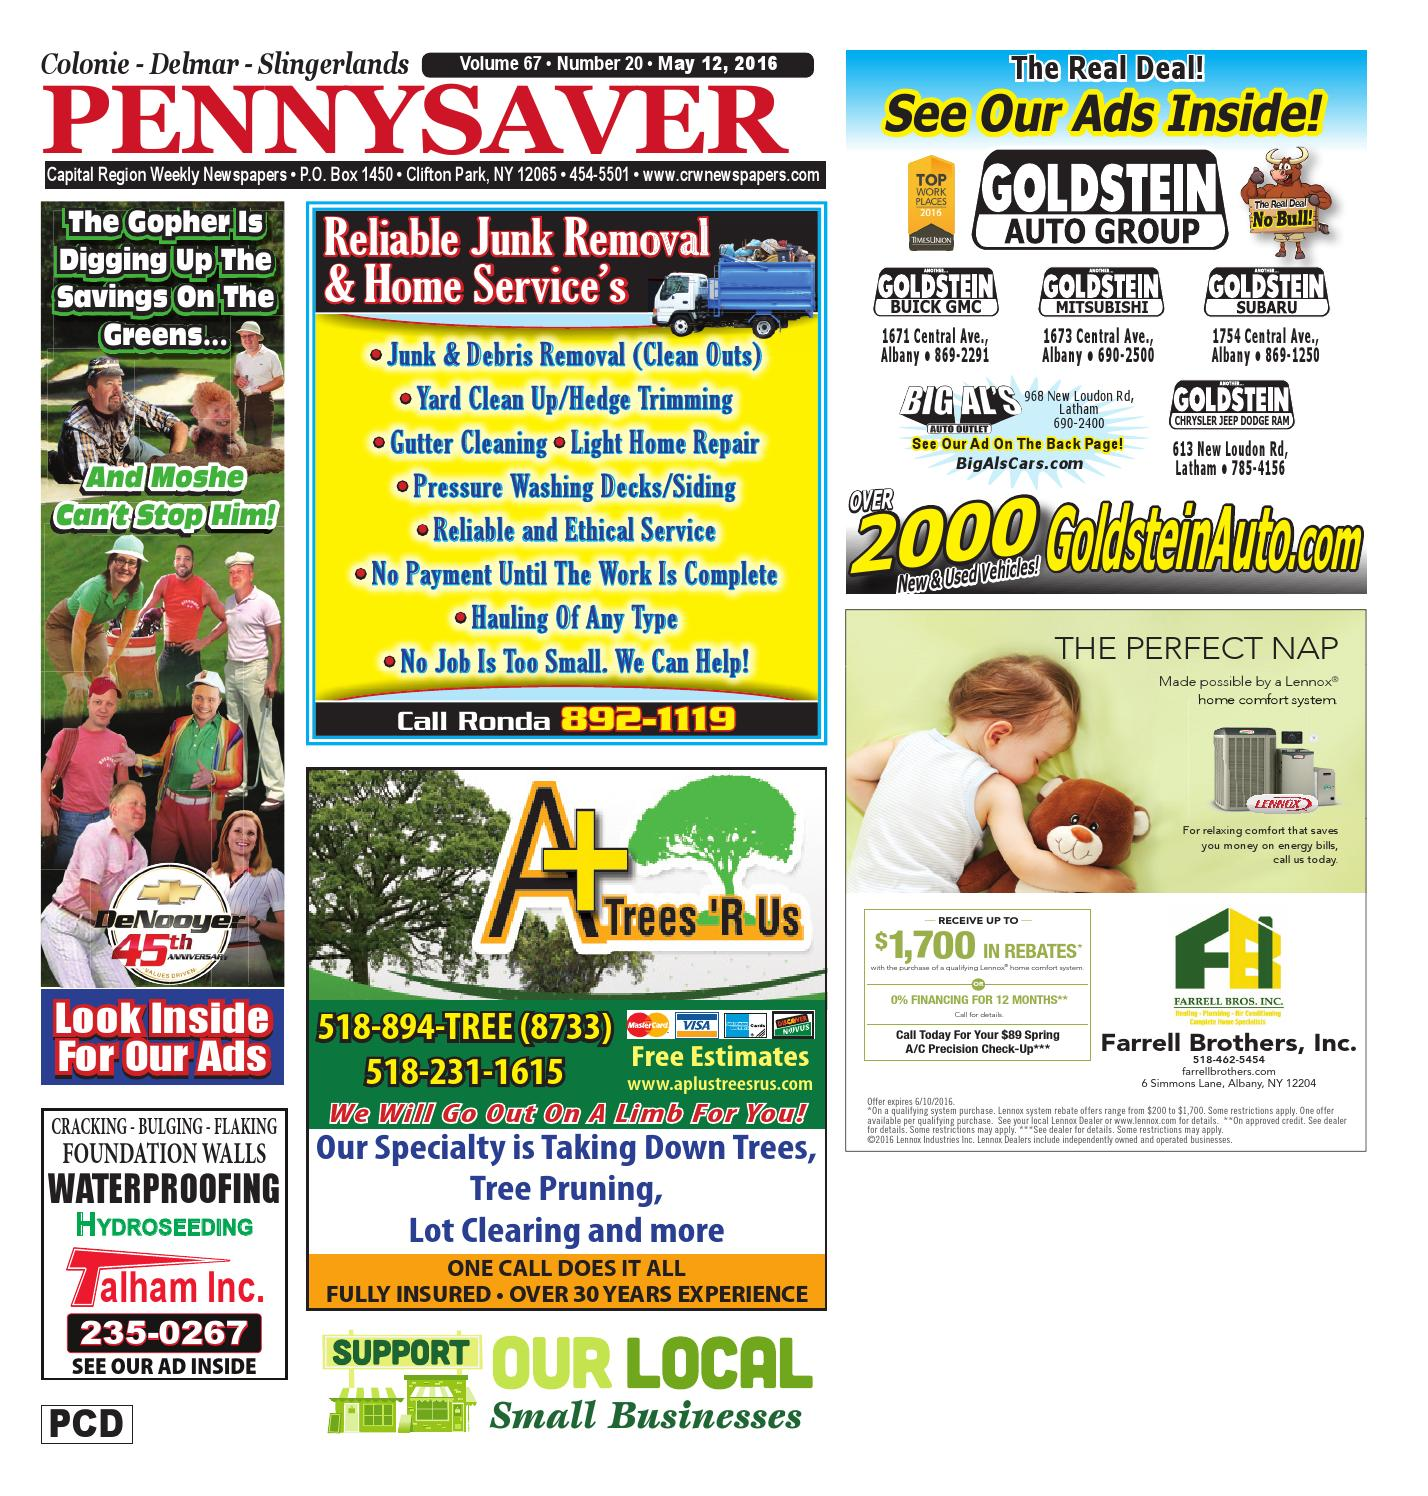 Colonie Delmar Slingerlands Pennysaver 051216 By Capital